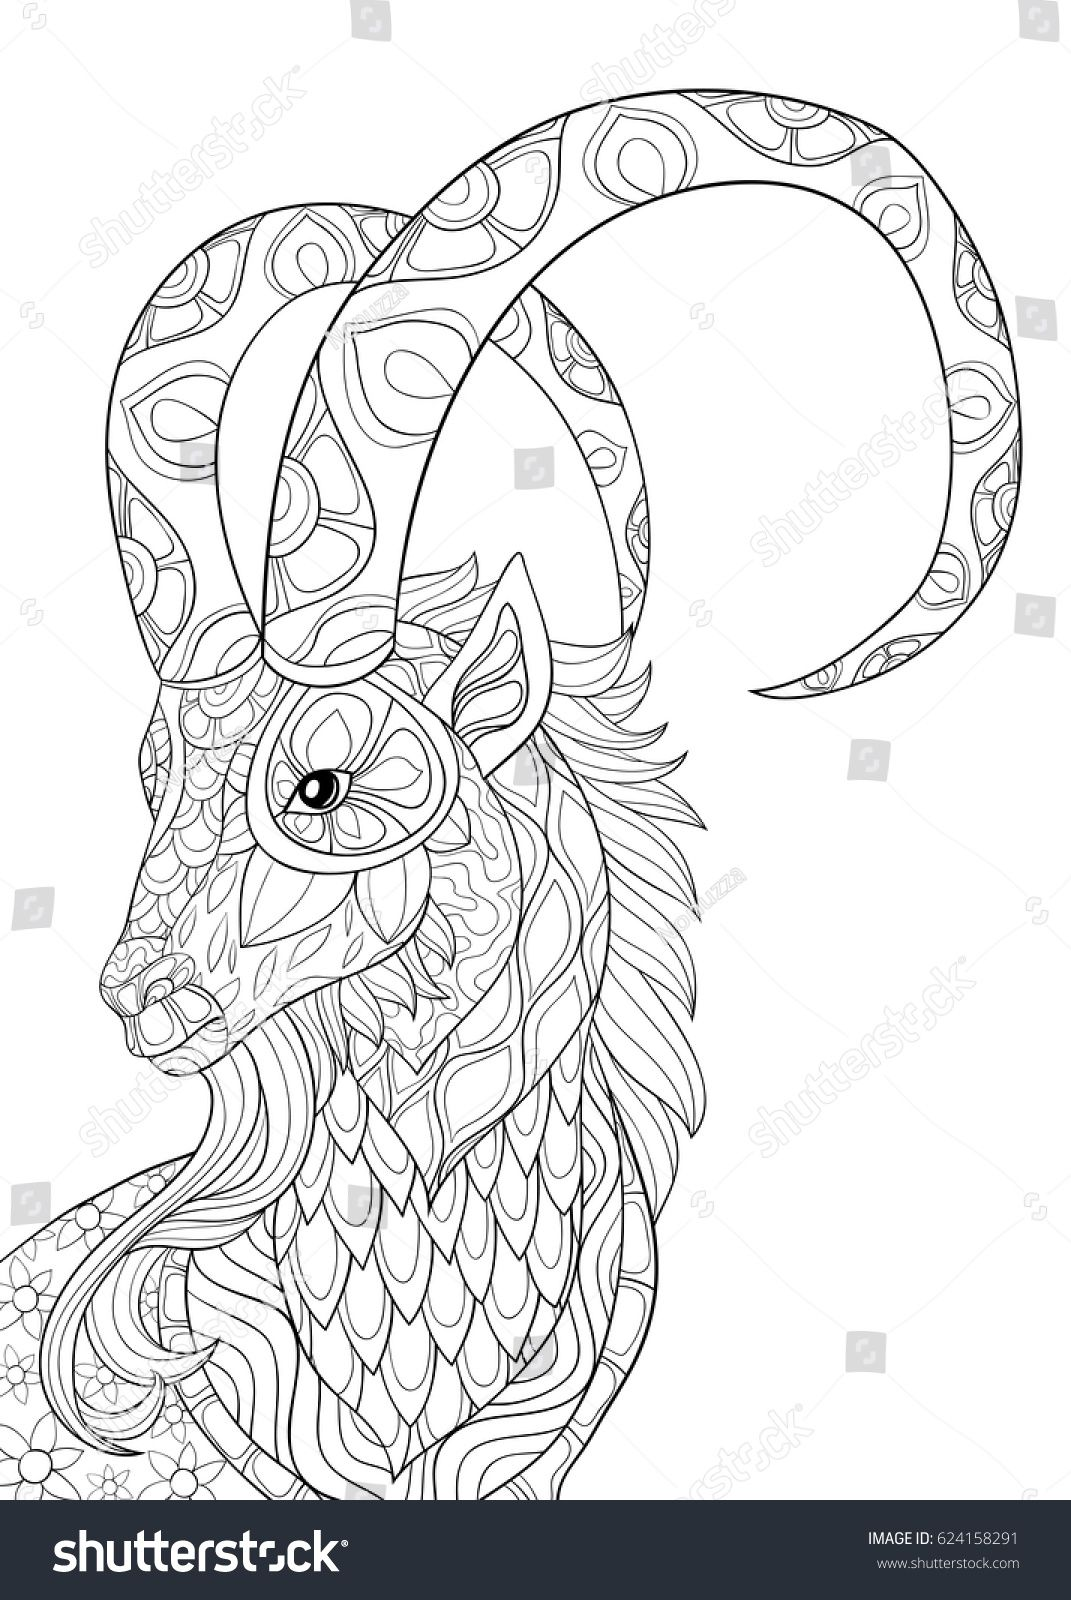 Adult Coloring Page Goat Zen Art Style Illustration